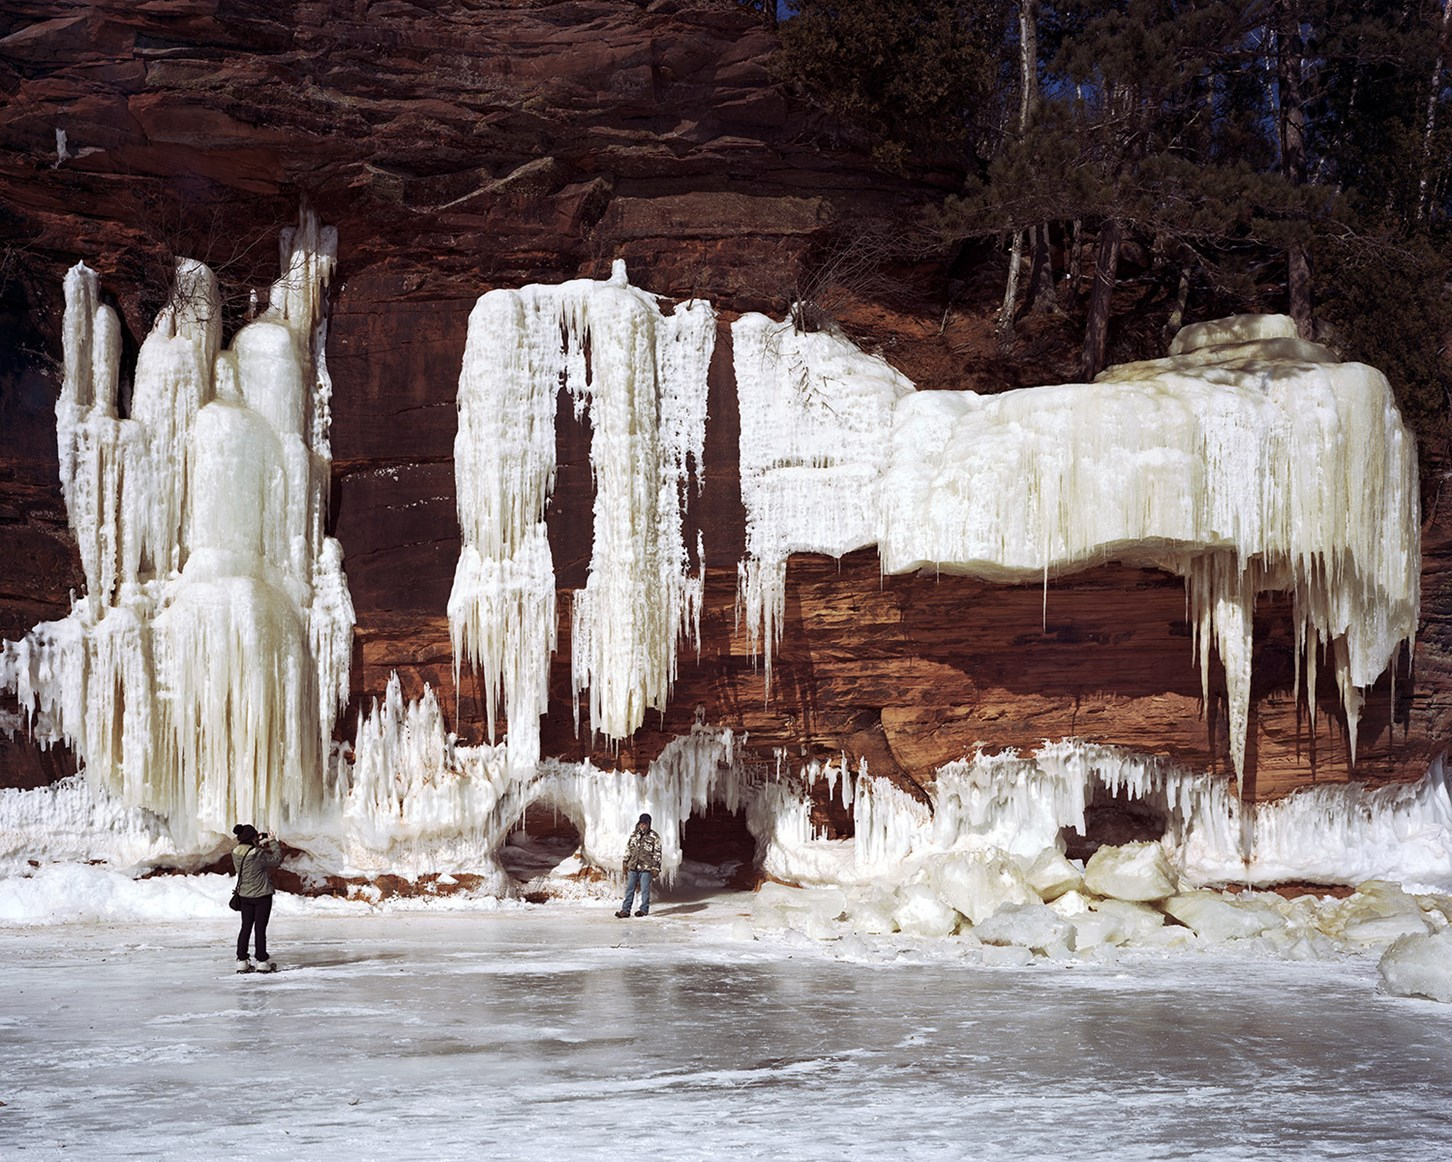 Ice Caves, Bayfield, Wisconsin, February 2015